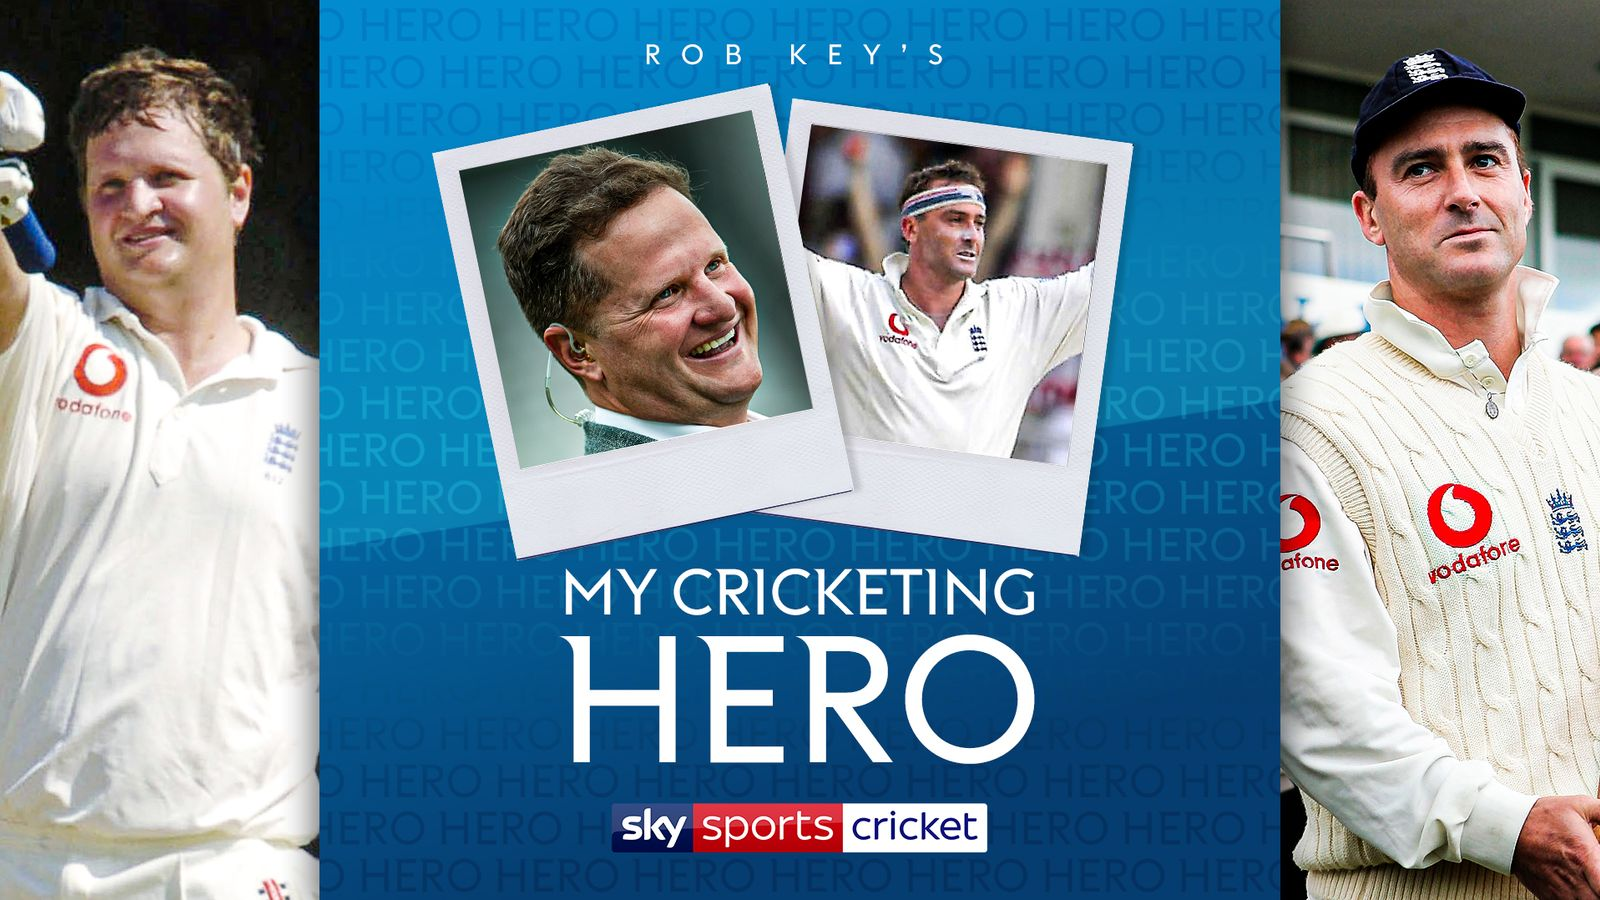 My Cricketing Hero: Rob Key elige a Graham Thorpe | Noticias de Cricket 16